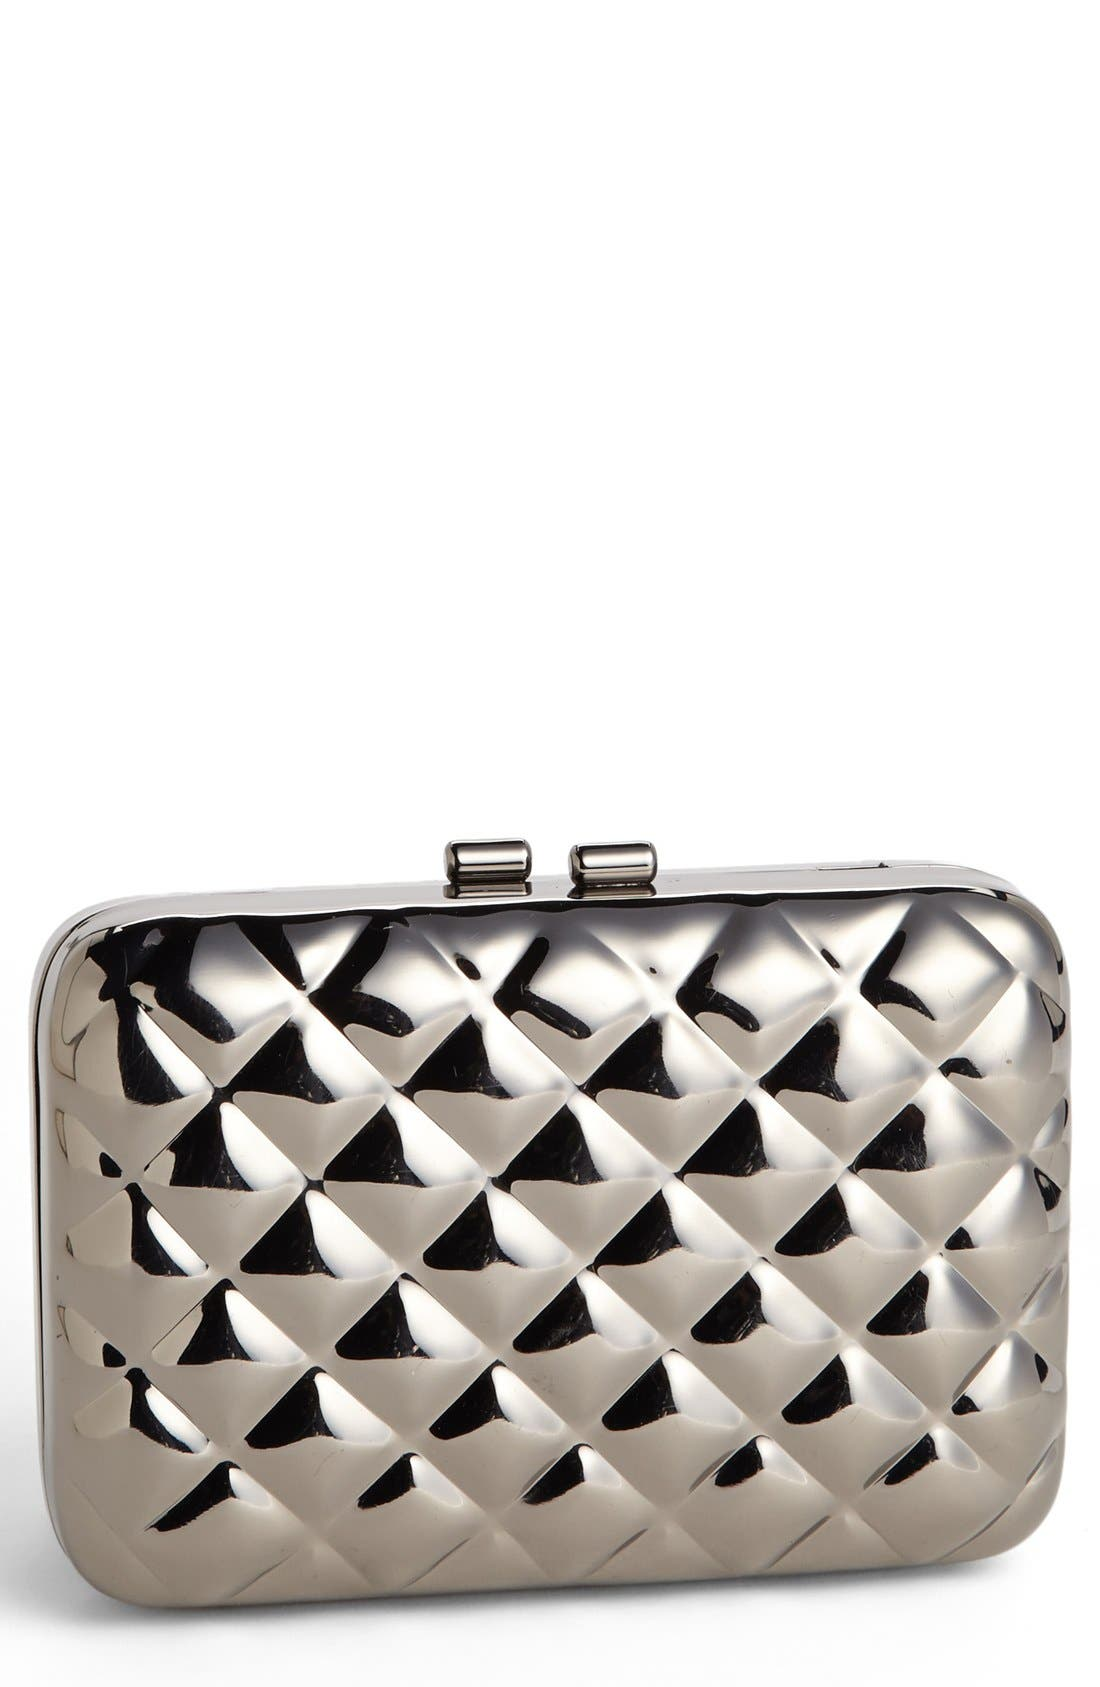 Quilted Metal Clutch,                         Main,                         color, Gunmetal